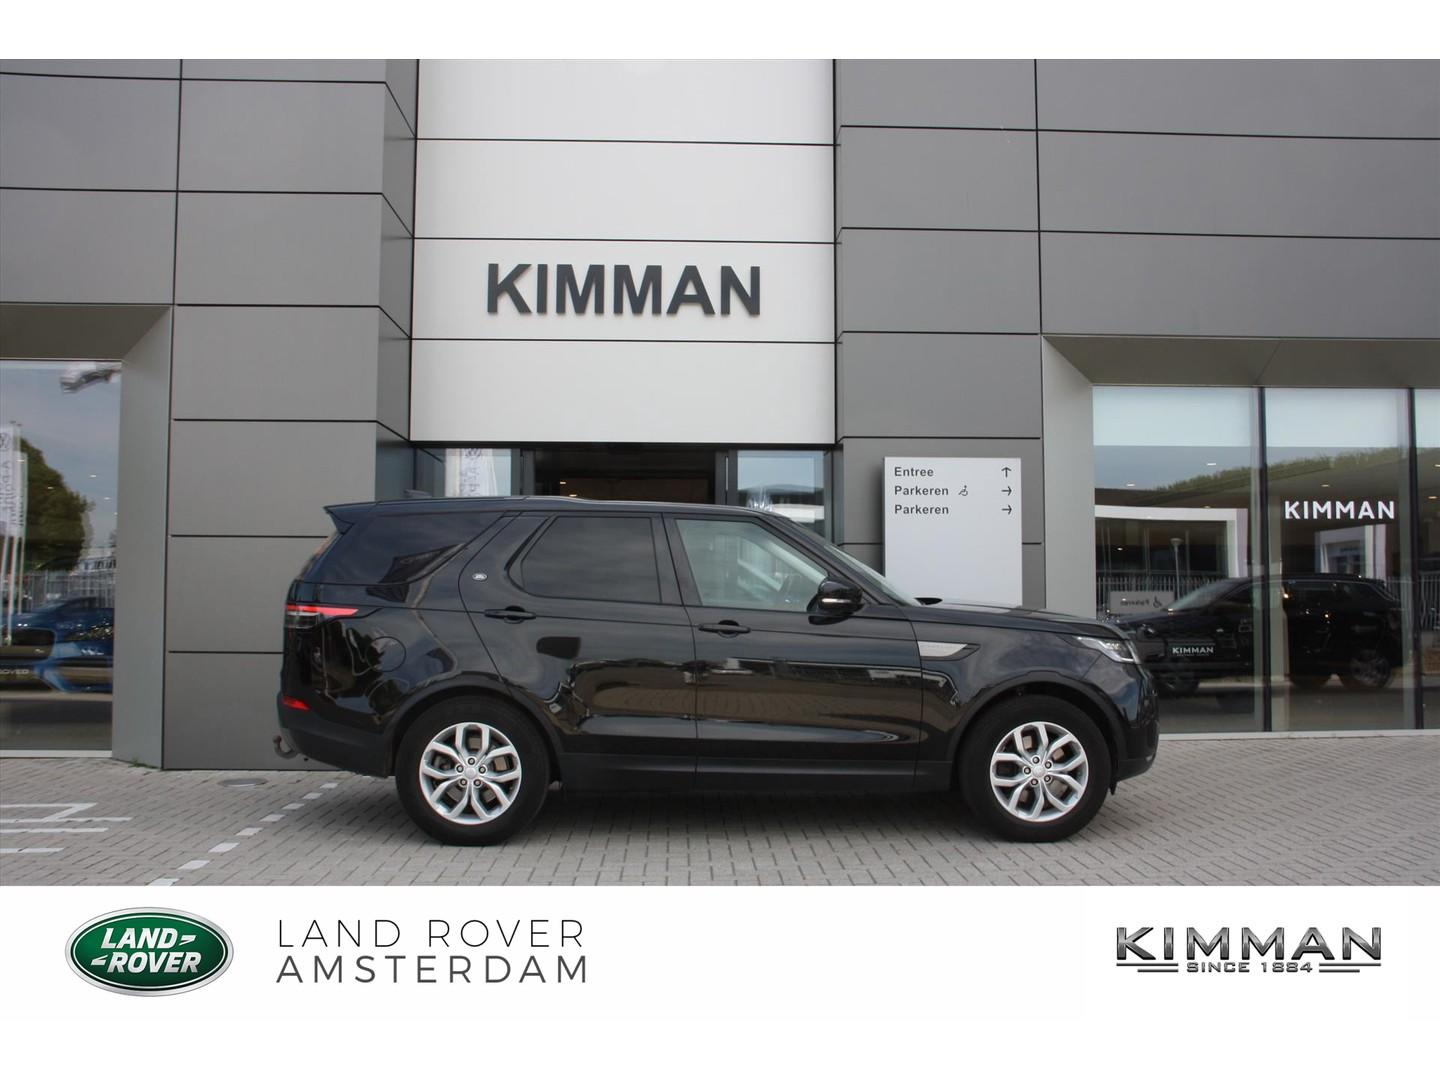 Land rover Discovery 2.0 td4 commercial aut.8 se